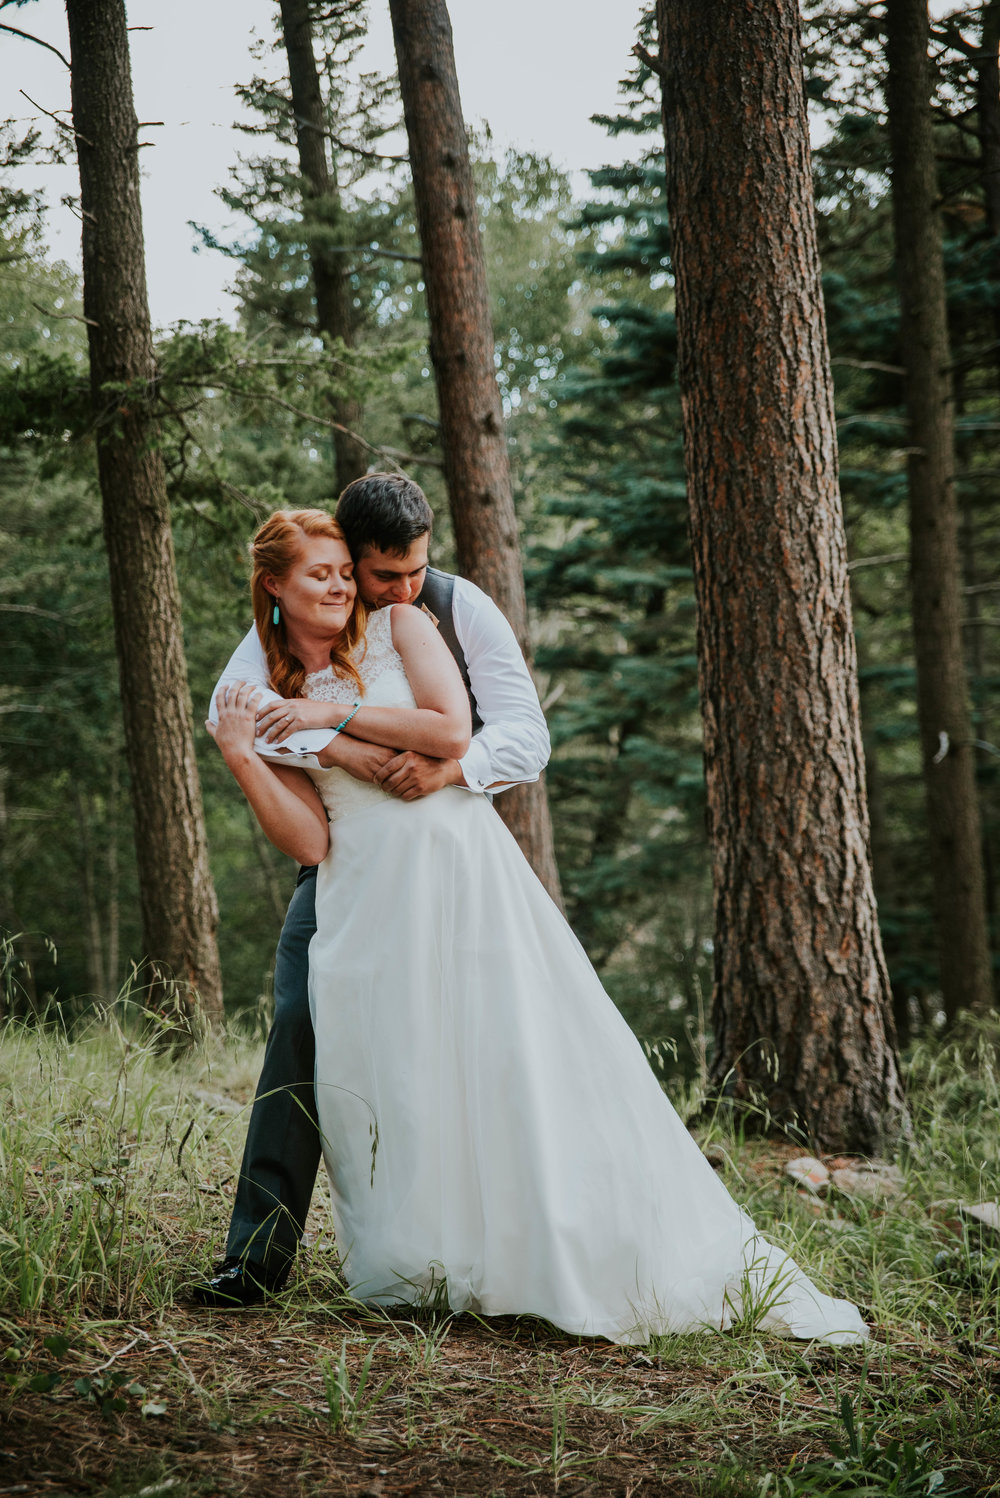 This summer we had the honor of photographing Leigh and Don's wedding in the Santa Fe National Forest in New Mexico!